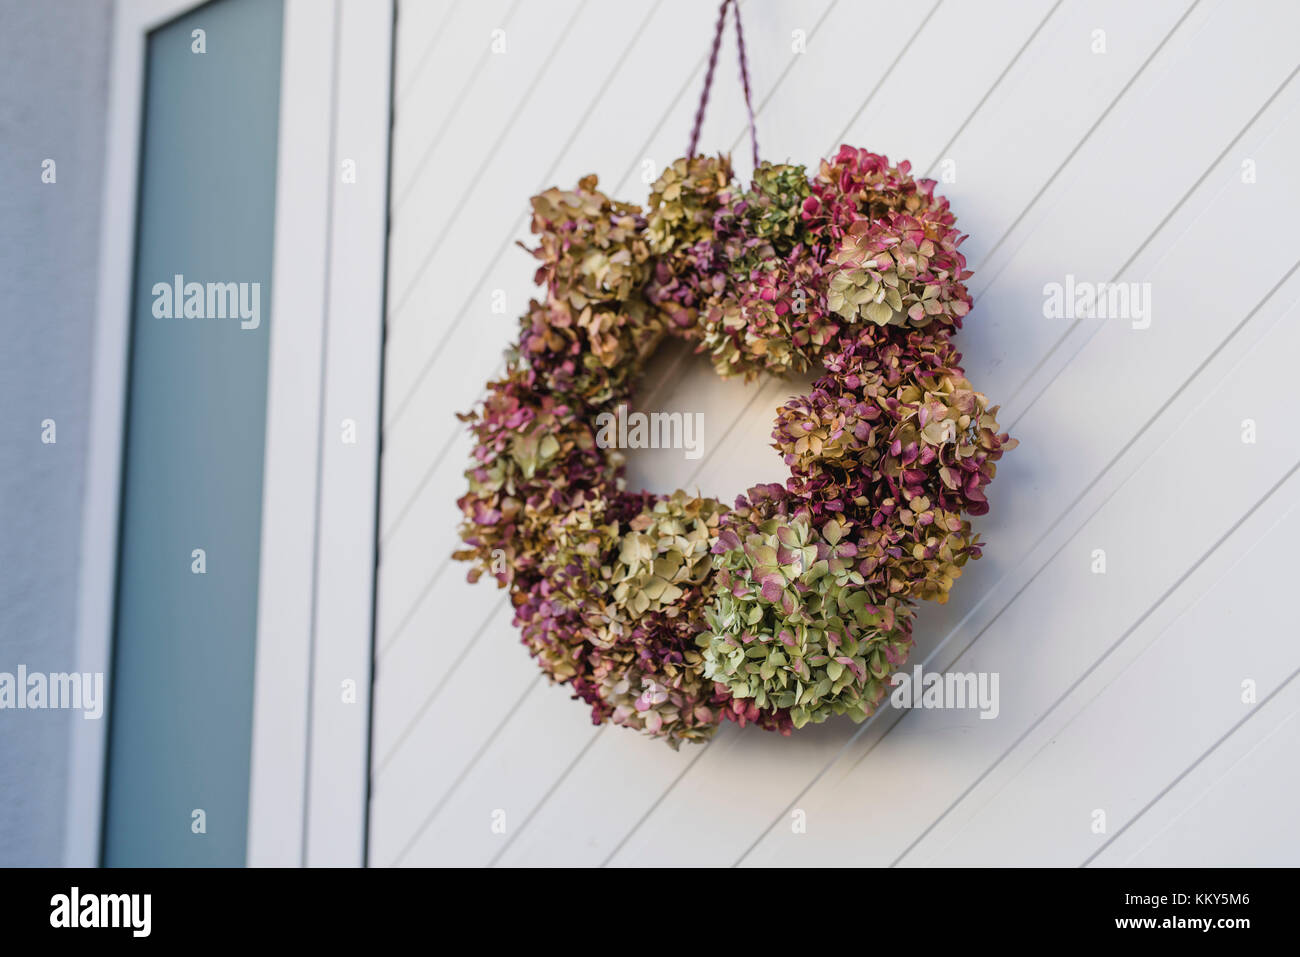 Still life, front door, detail, autumnal decoration, wreath with hydrangea blossoms, - Stock Image